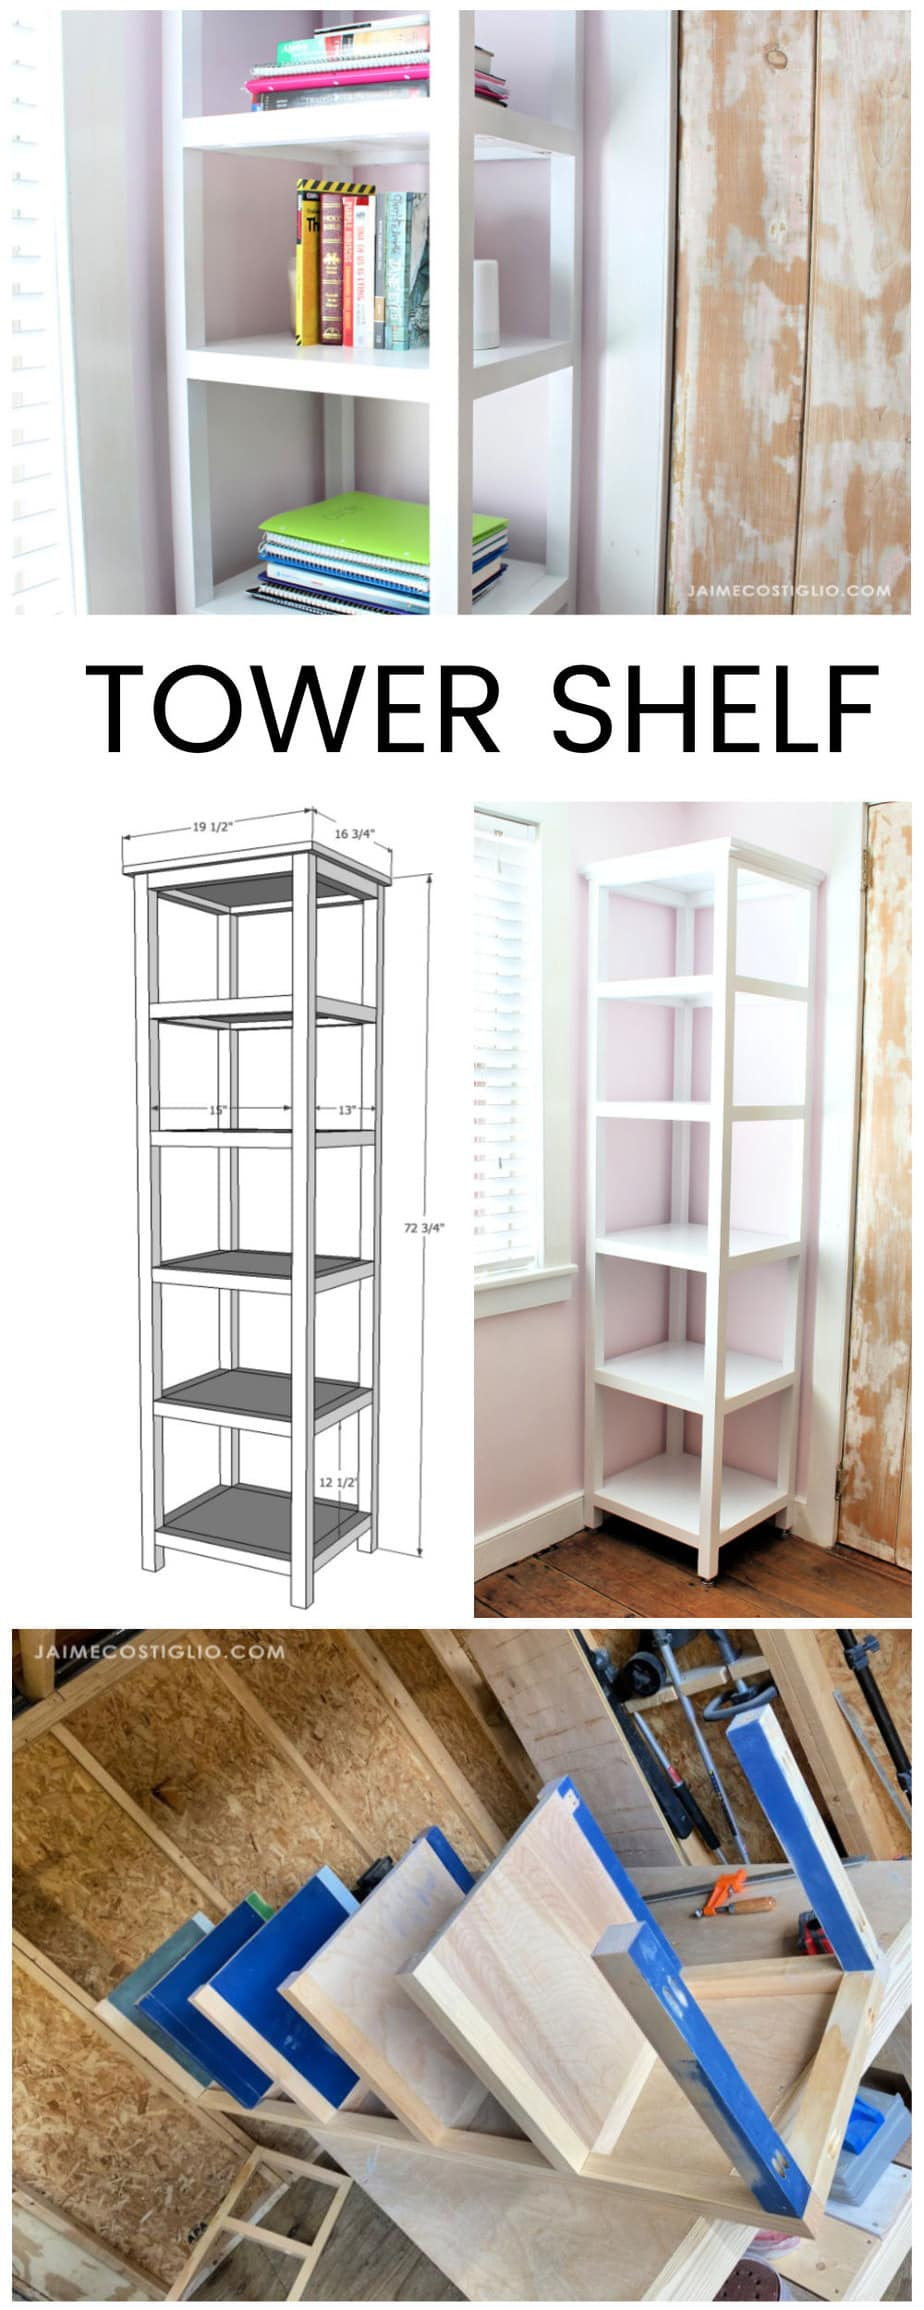 diy tower shelf free plans